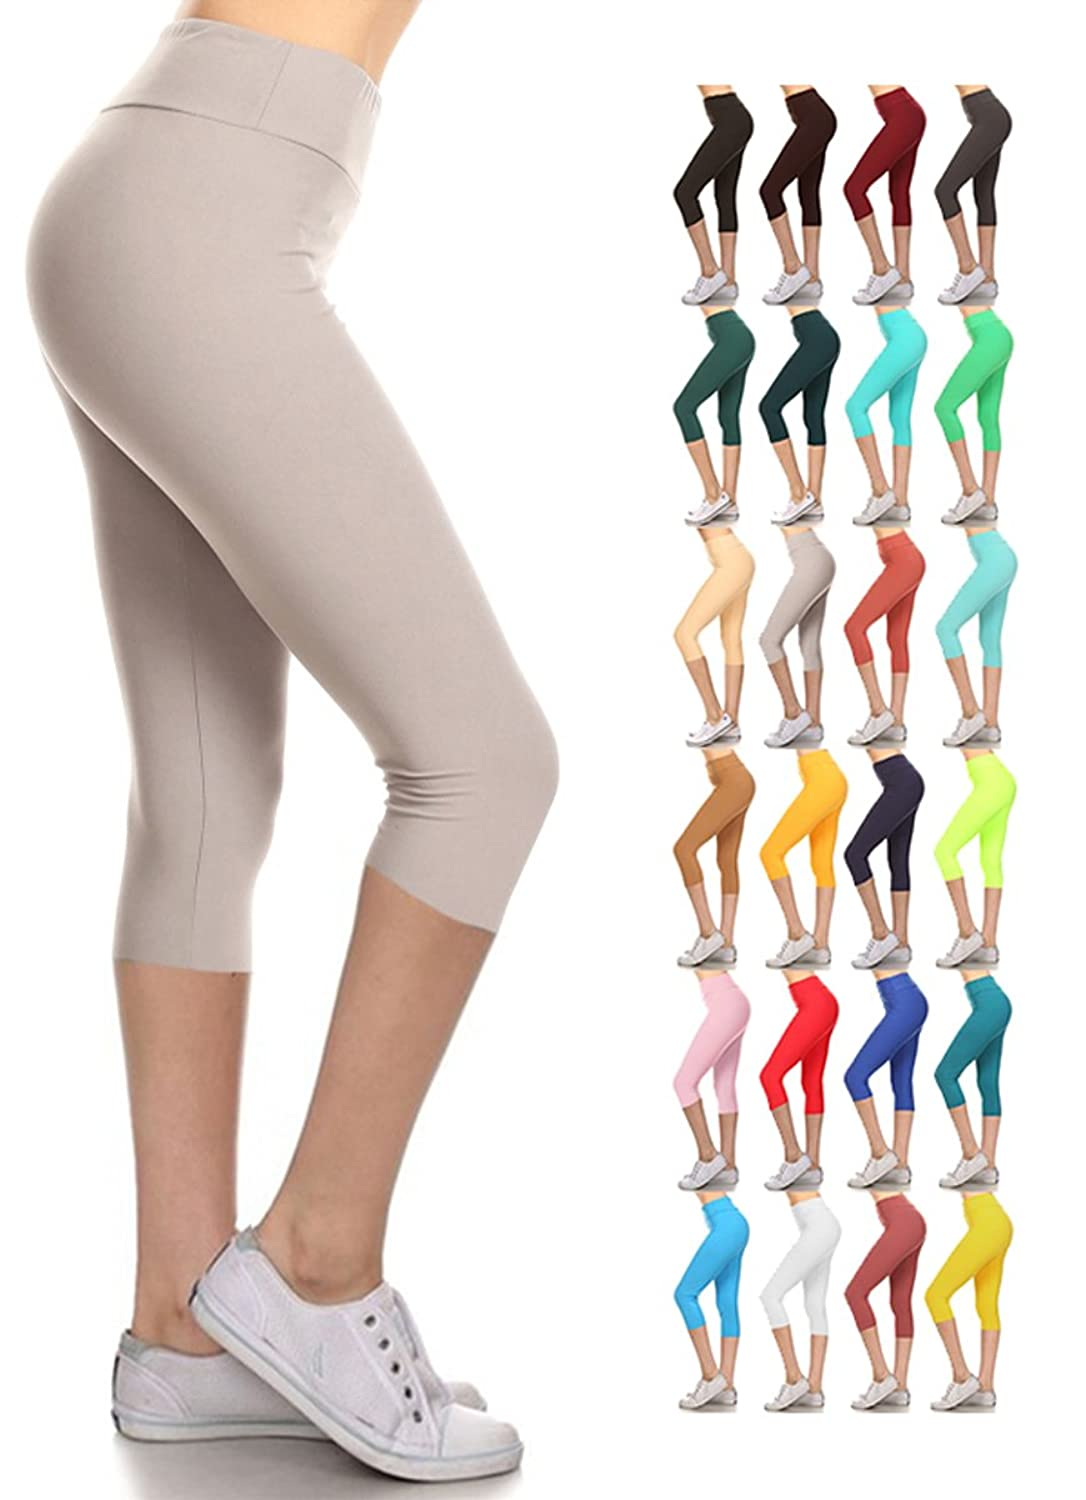 aa3a3c56c861b 92% Polyester 8% Spandex / High Quality Soft Fabric One Size Fits Most,  Super Stretch Essential comfort and stylish Yoga Cropped Capri leggings  perfect for ...